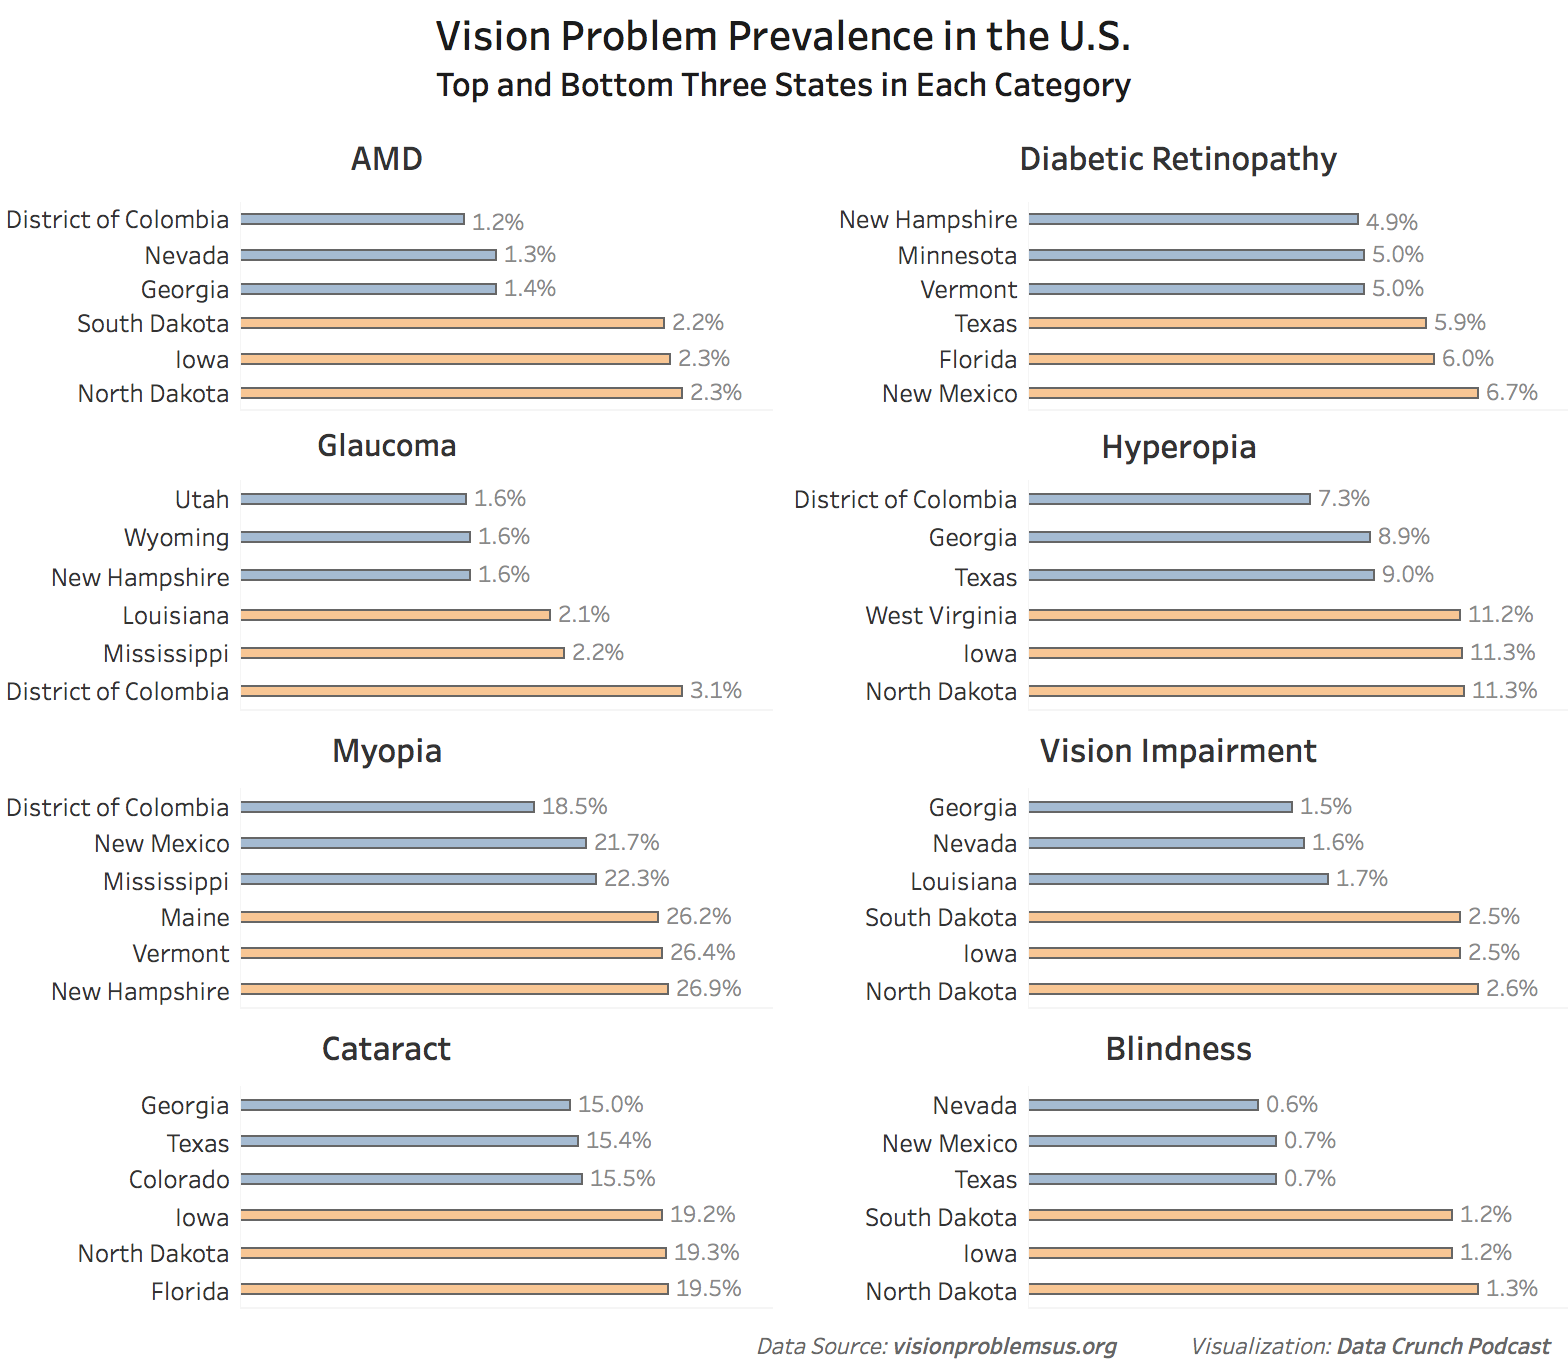 States with the most and least prevalence of vision problems in the U.S.